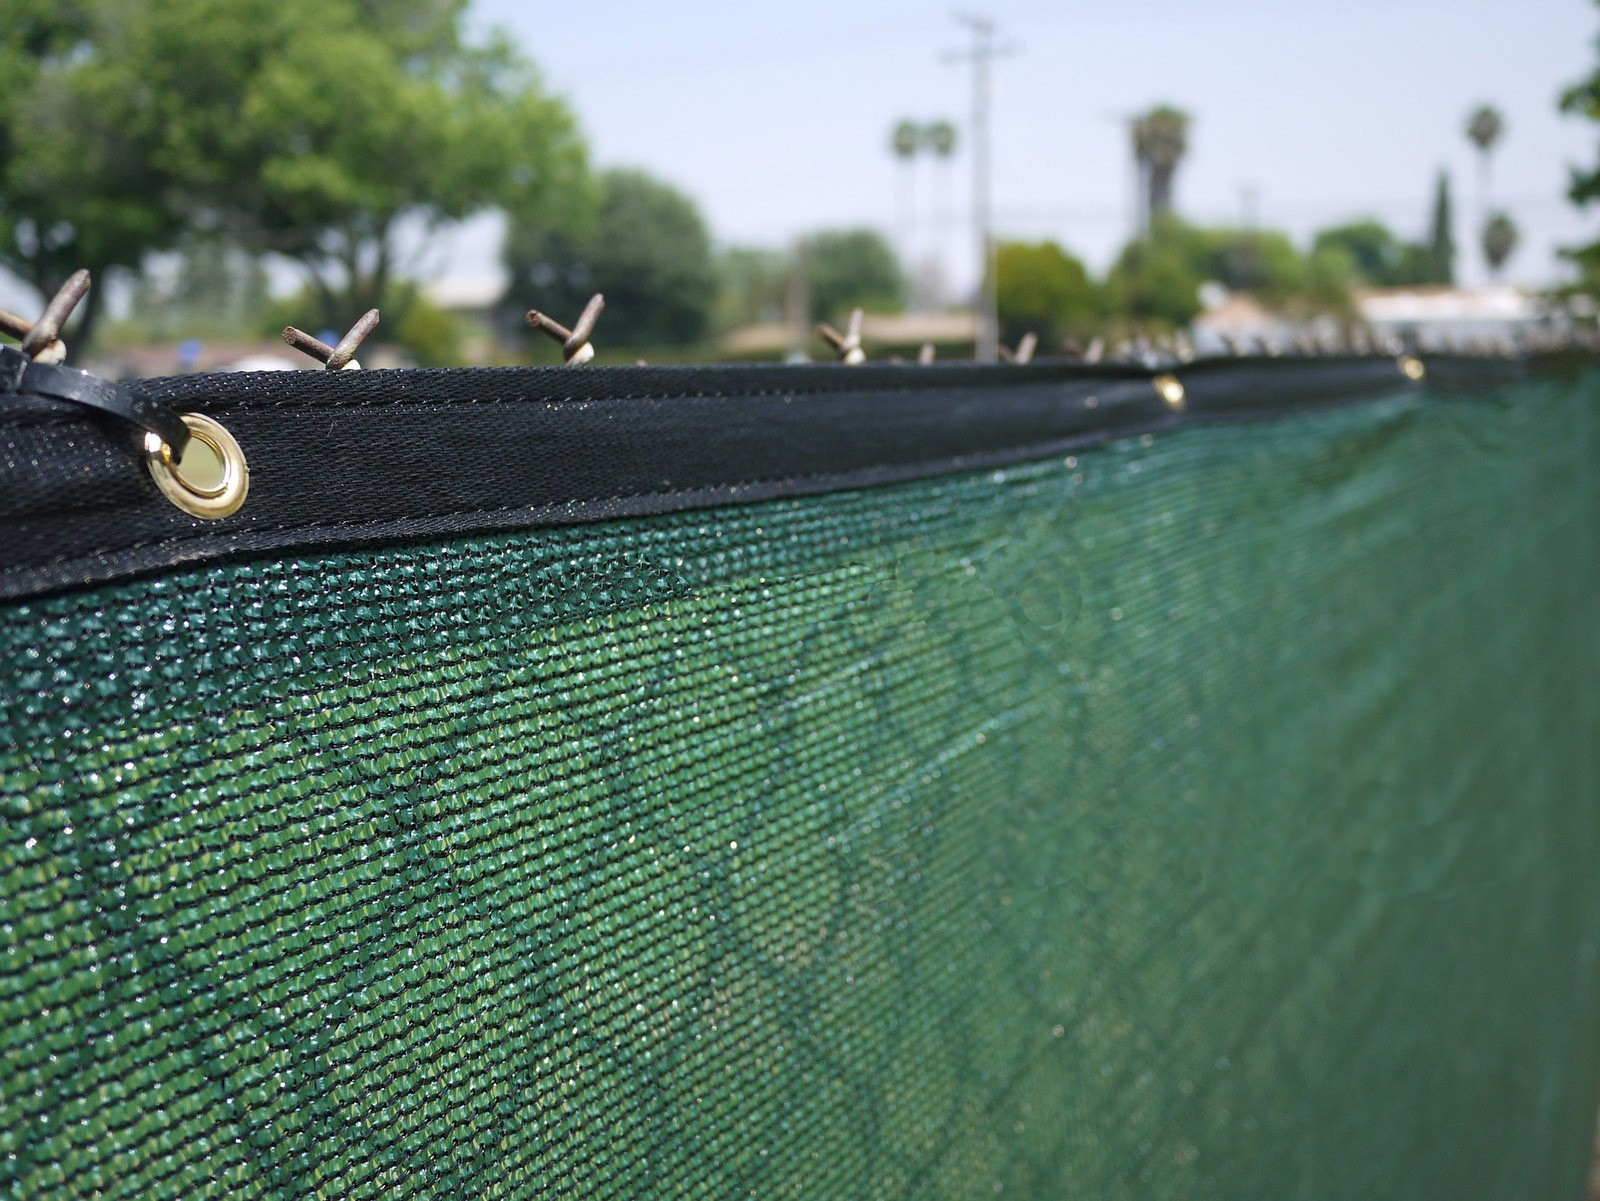 Privacy screen for chain link fences - 4 X 50 Fence Wind Privacy Screen Fabric Mesh Brass Grommets 4x50 Walmart Com